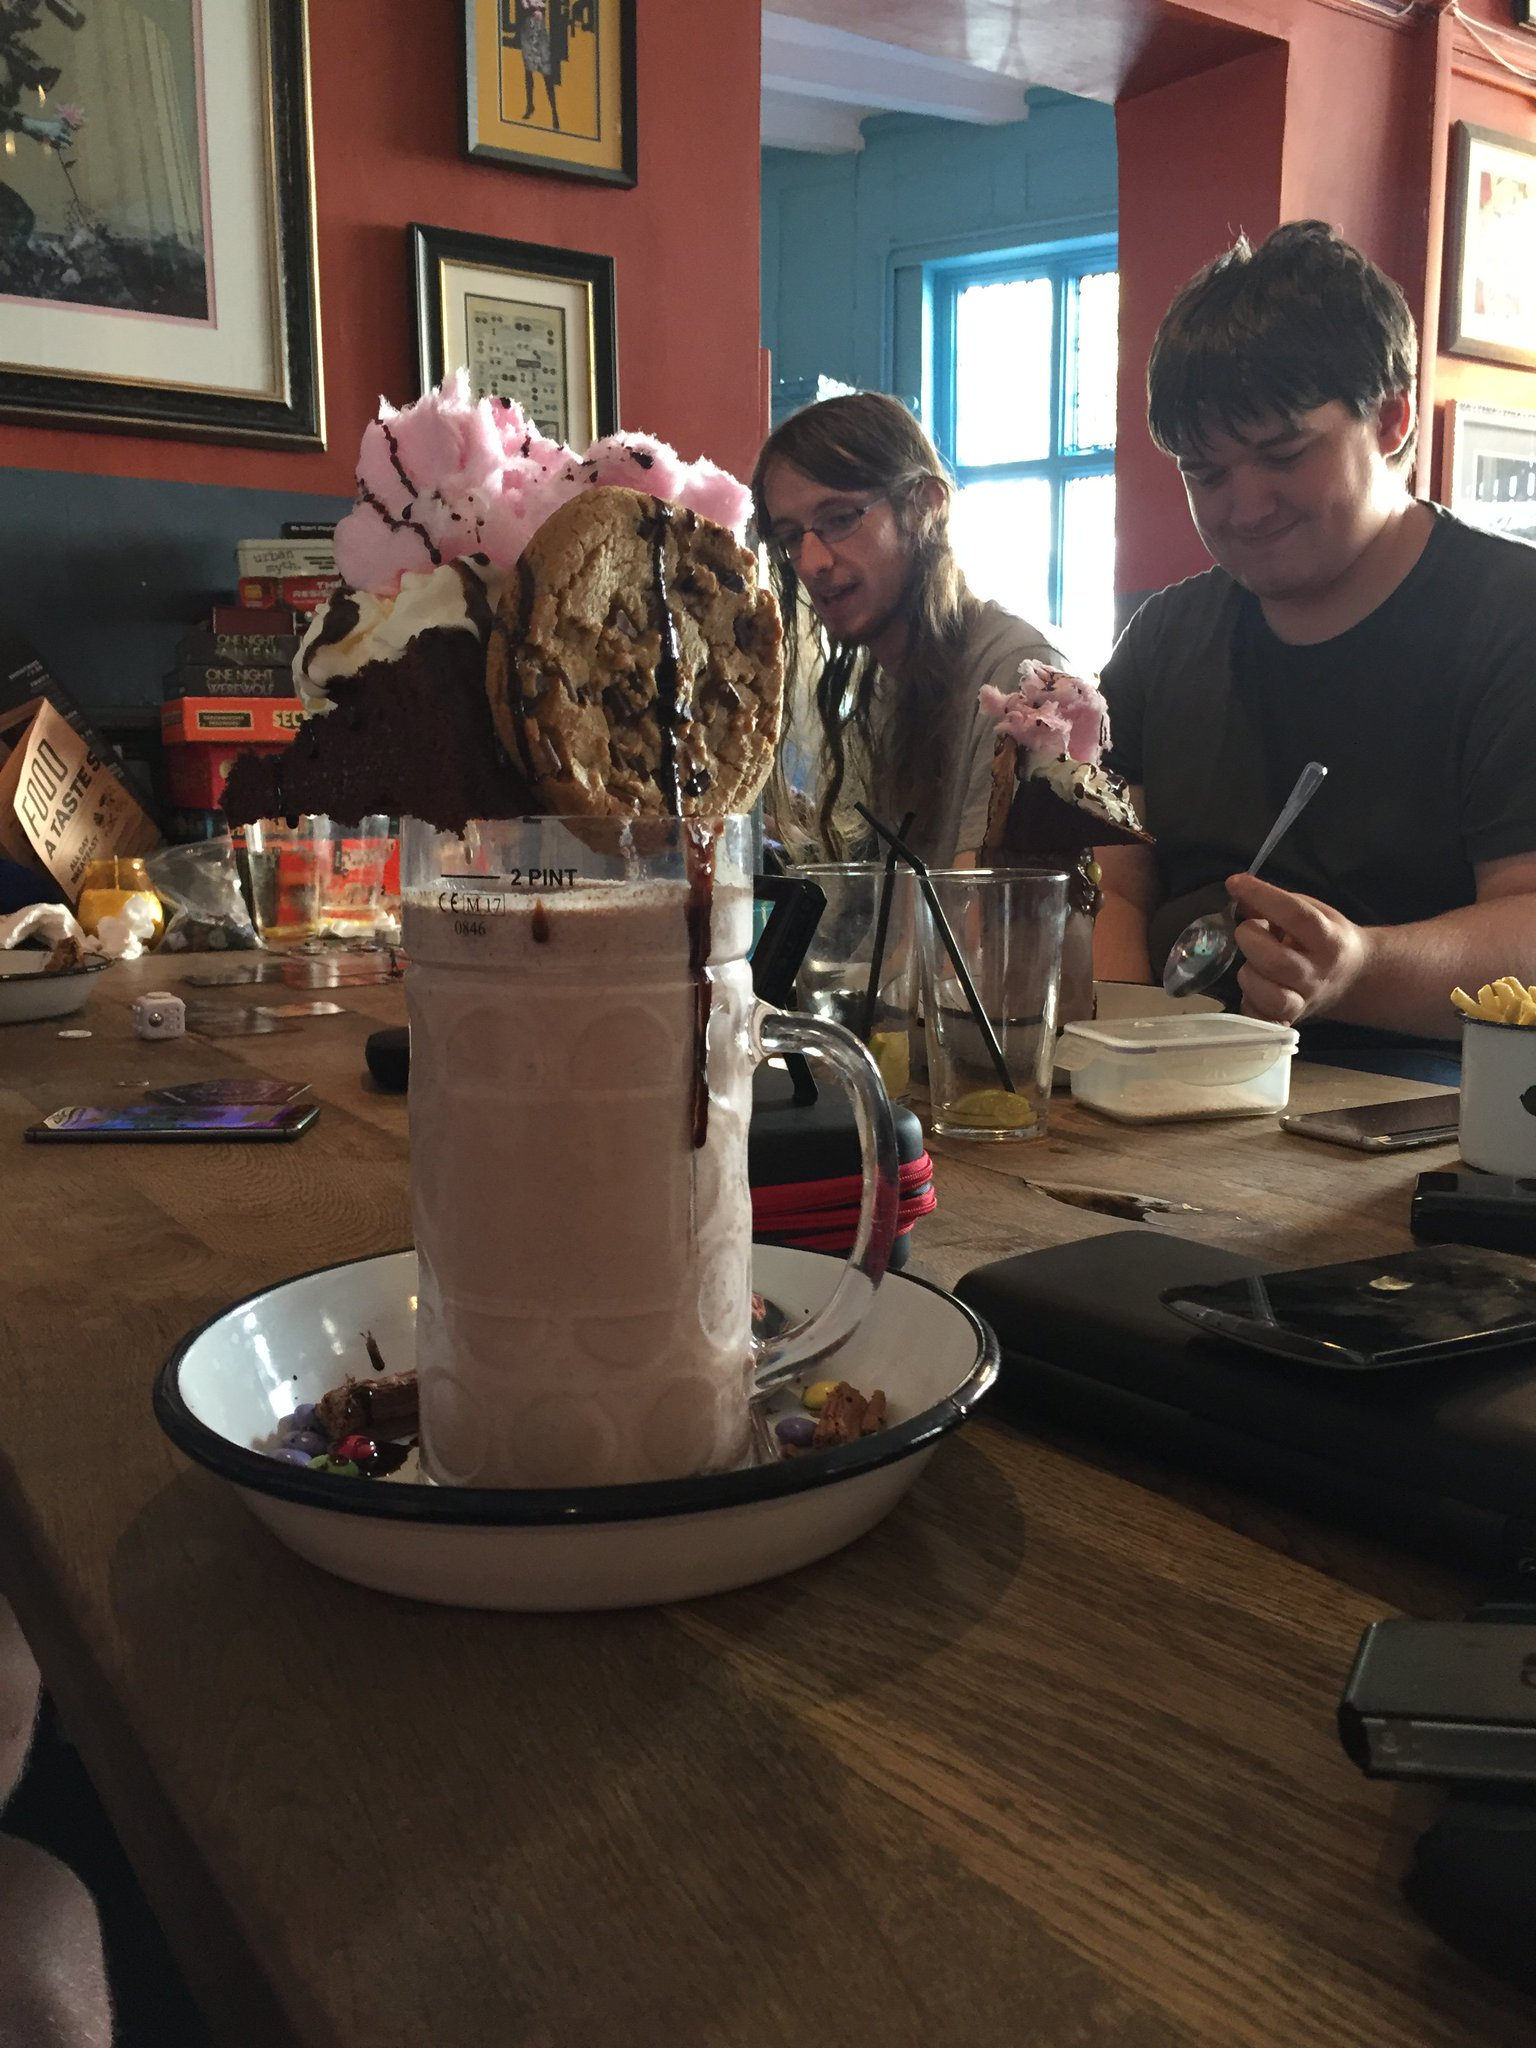 A photo of an insane dessert, composed of a large glass containing two pints of chocolate milkshake, on top of which are balanced a large chocolate chip cookie, a slice of chocolate cake, and a bunch of pink candy floss. The glass is surrounded by Nutella spread and M&Ms, and the entire thing is covered in chocolate sauce.